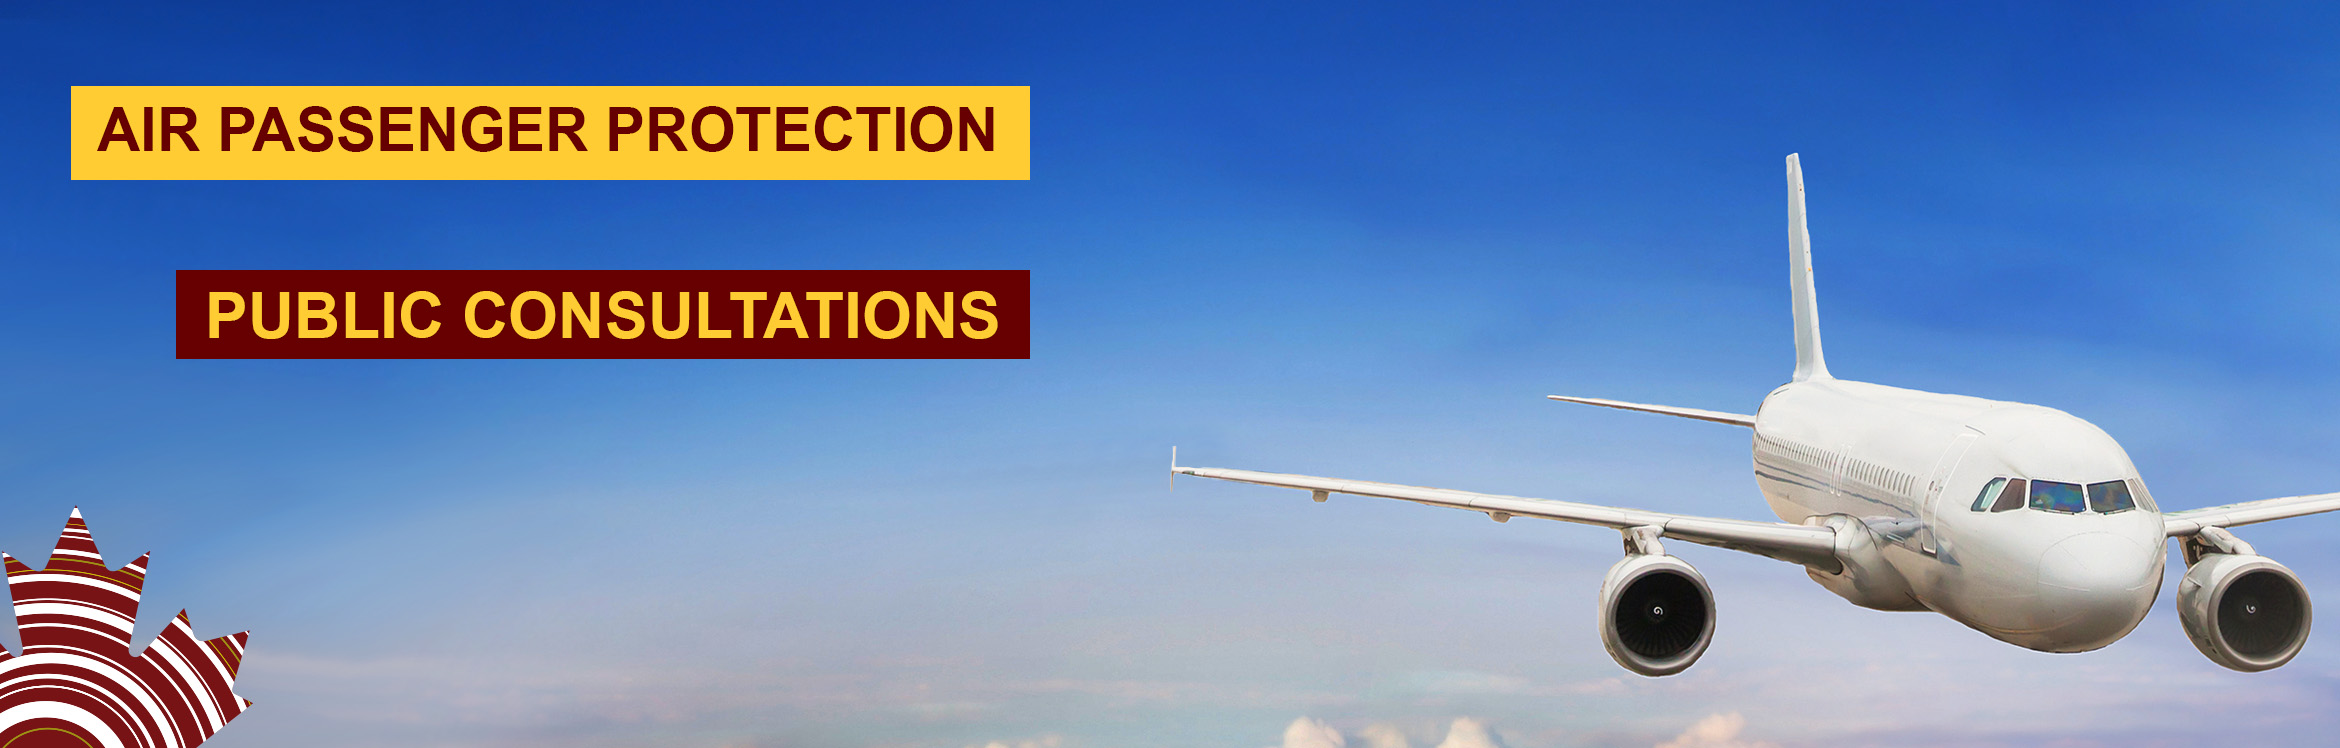 Air passenger protection consultation